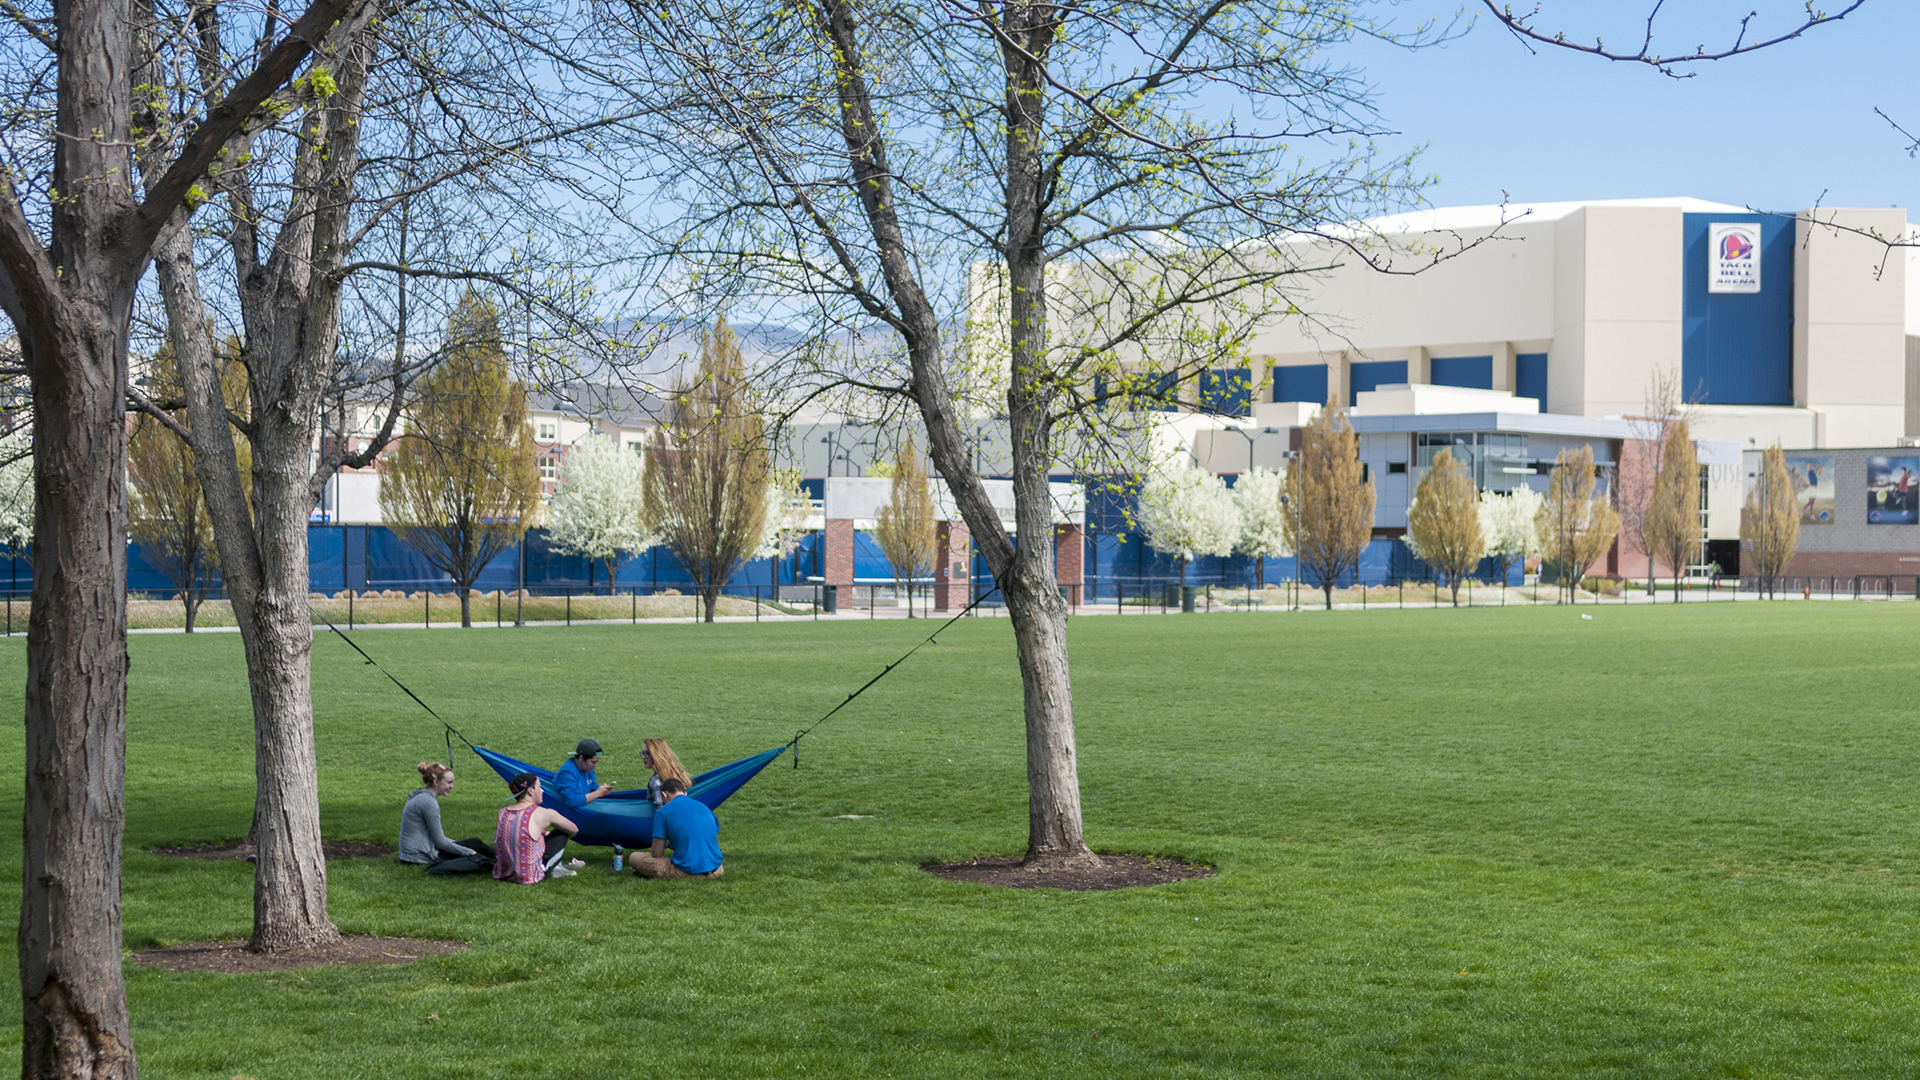 Relaxing on campus